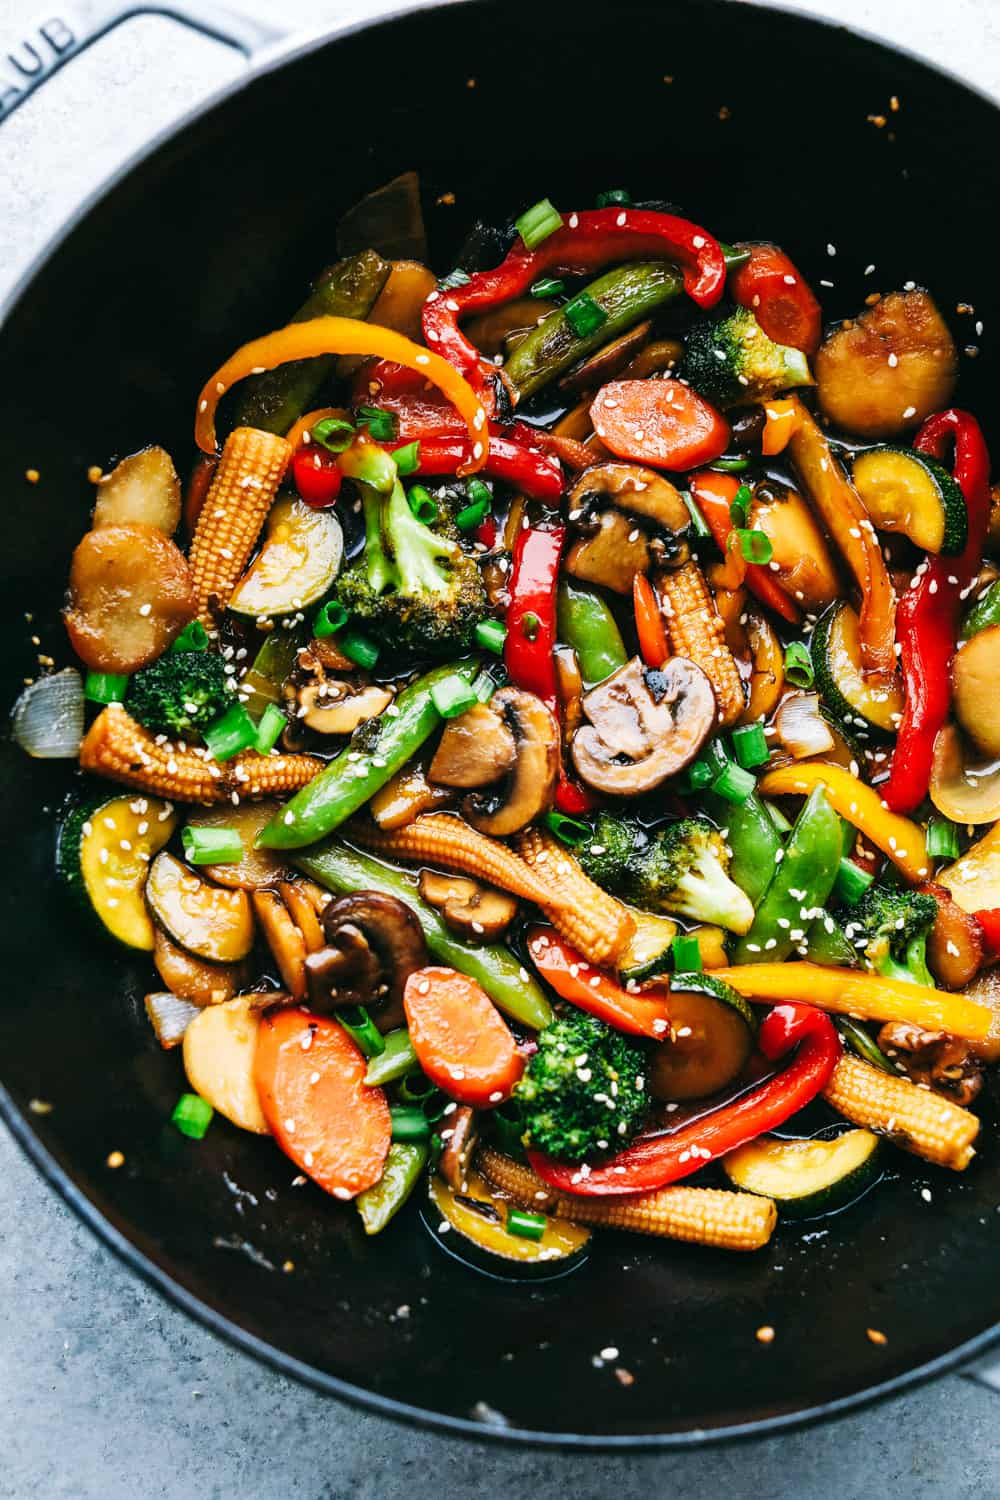 Easiest Vegetable Stir Fry